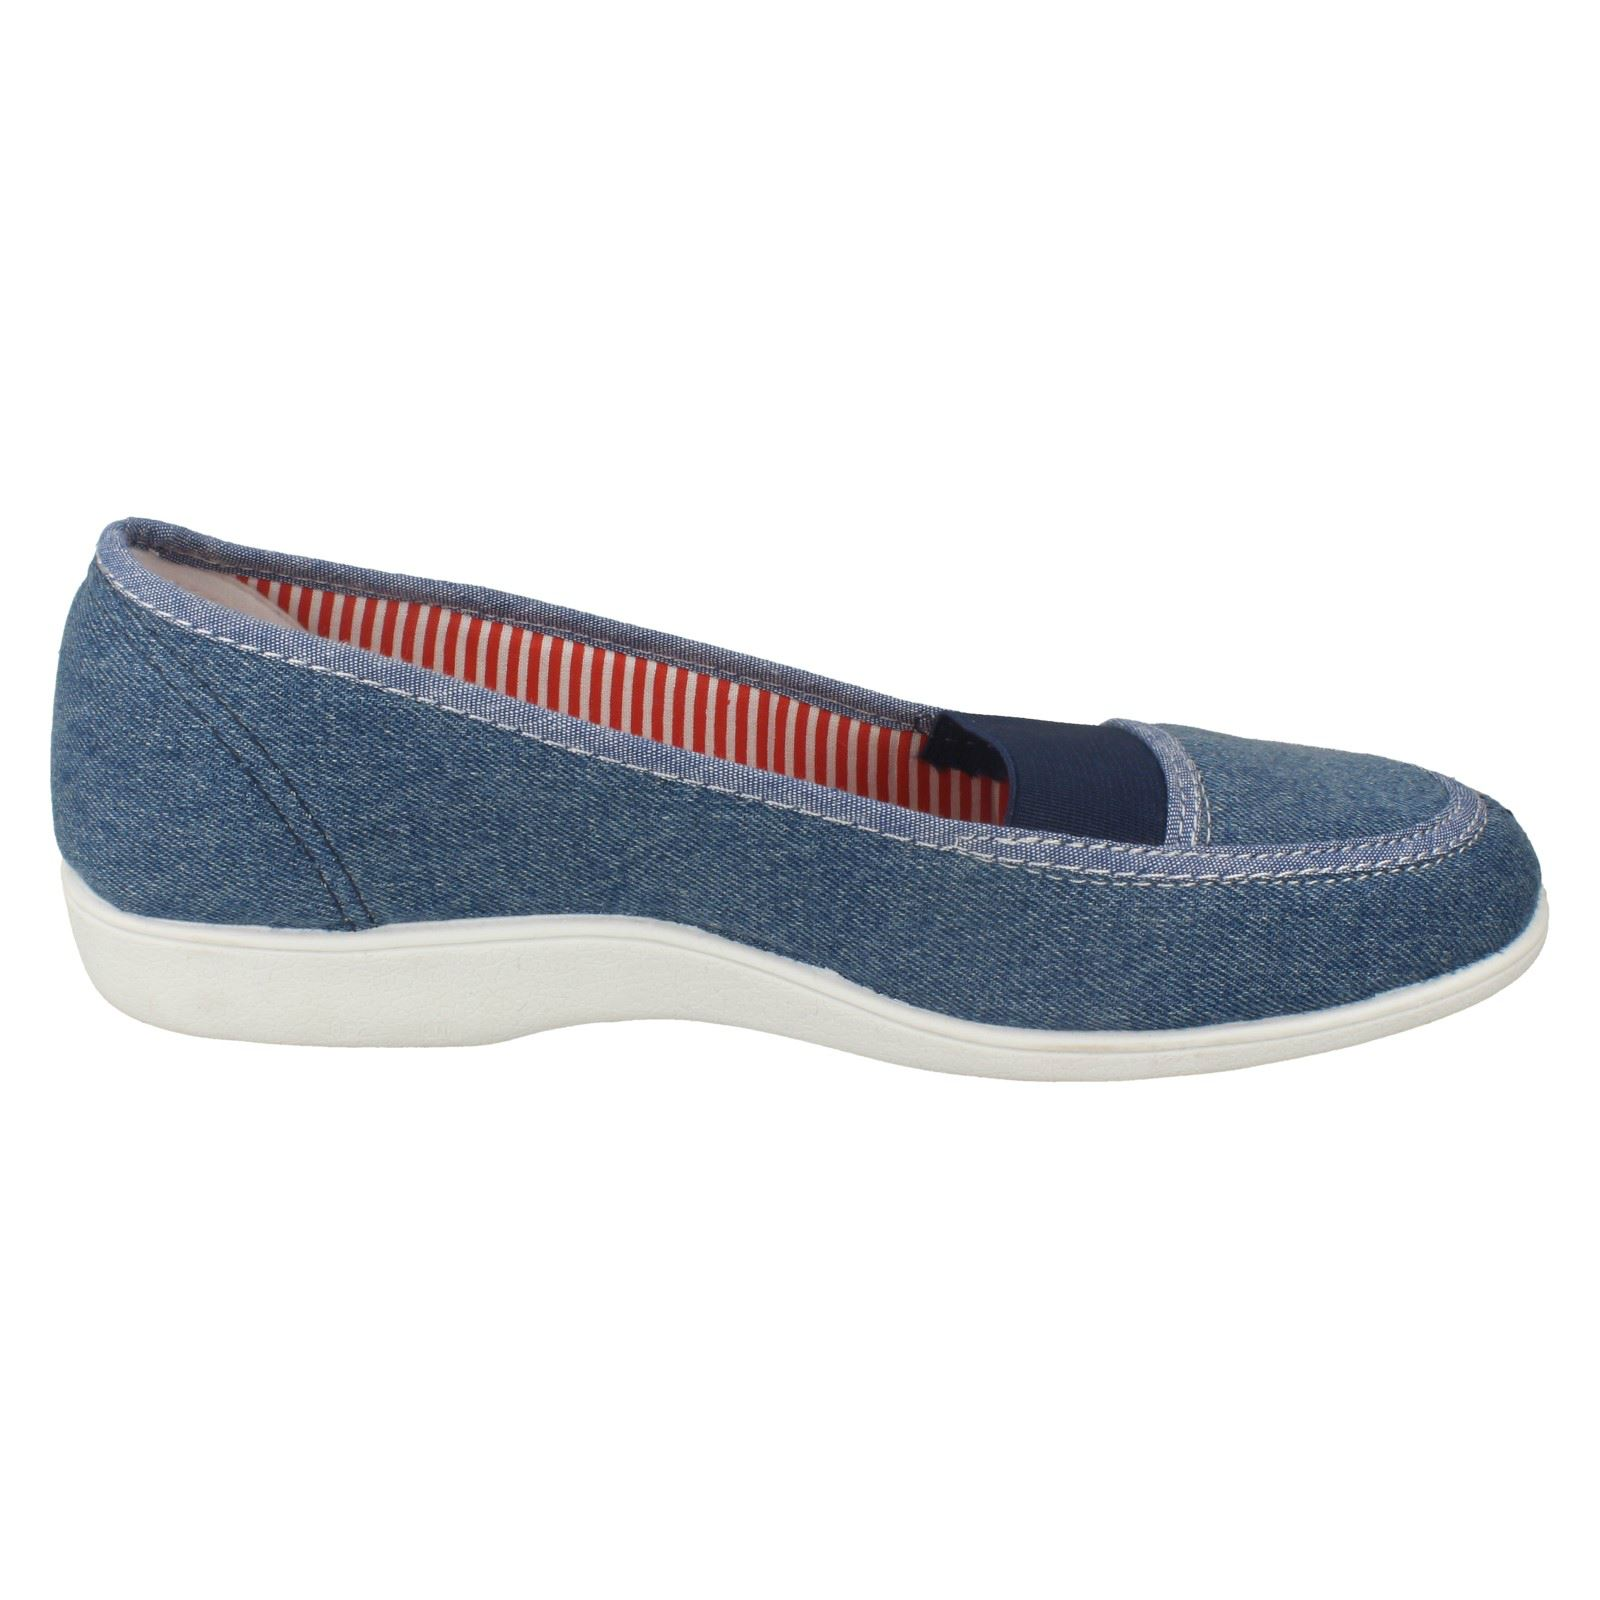 Free Step /'Patch/' Ladies Blue Slip On Canvas Shoes UK Sizes 4-7 R1A